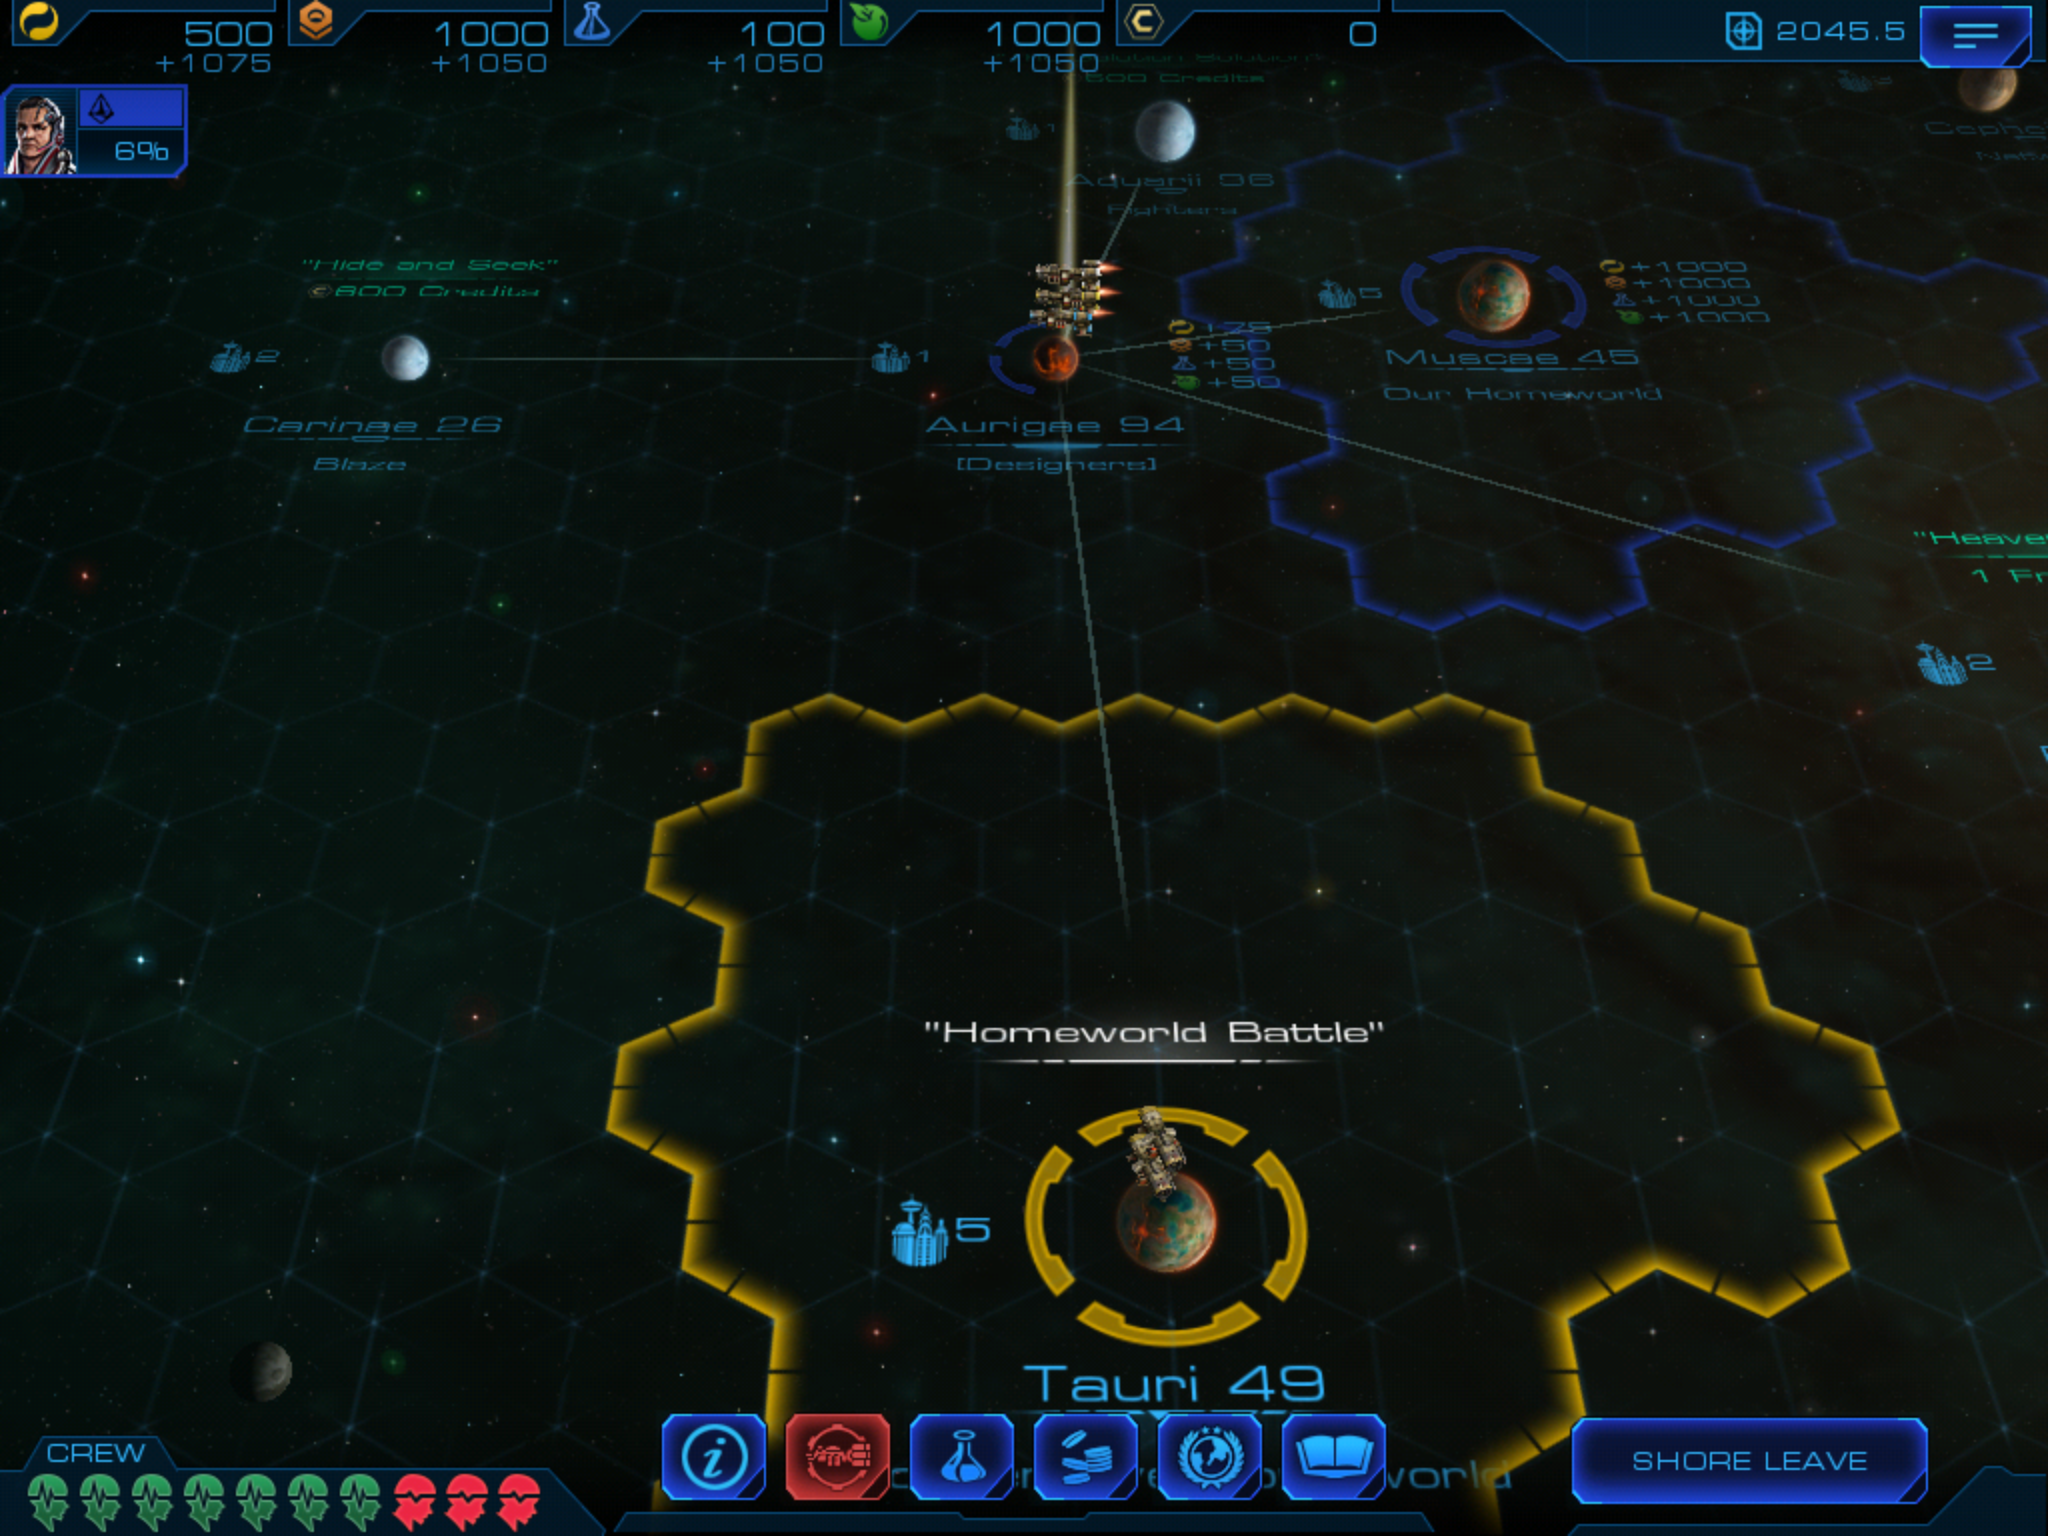 Top strategy game Sid Meier's Starships lands on iPad - day and date with the PC edition